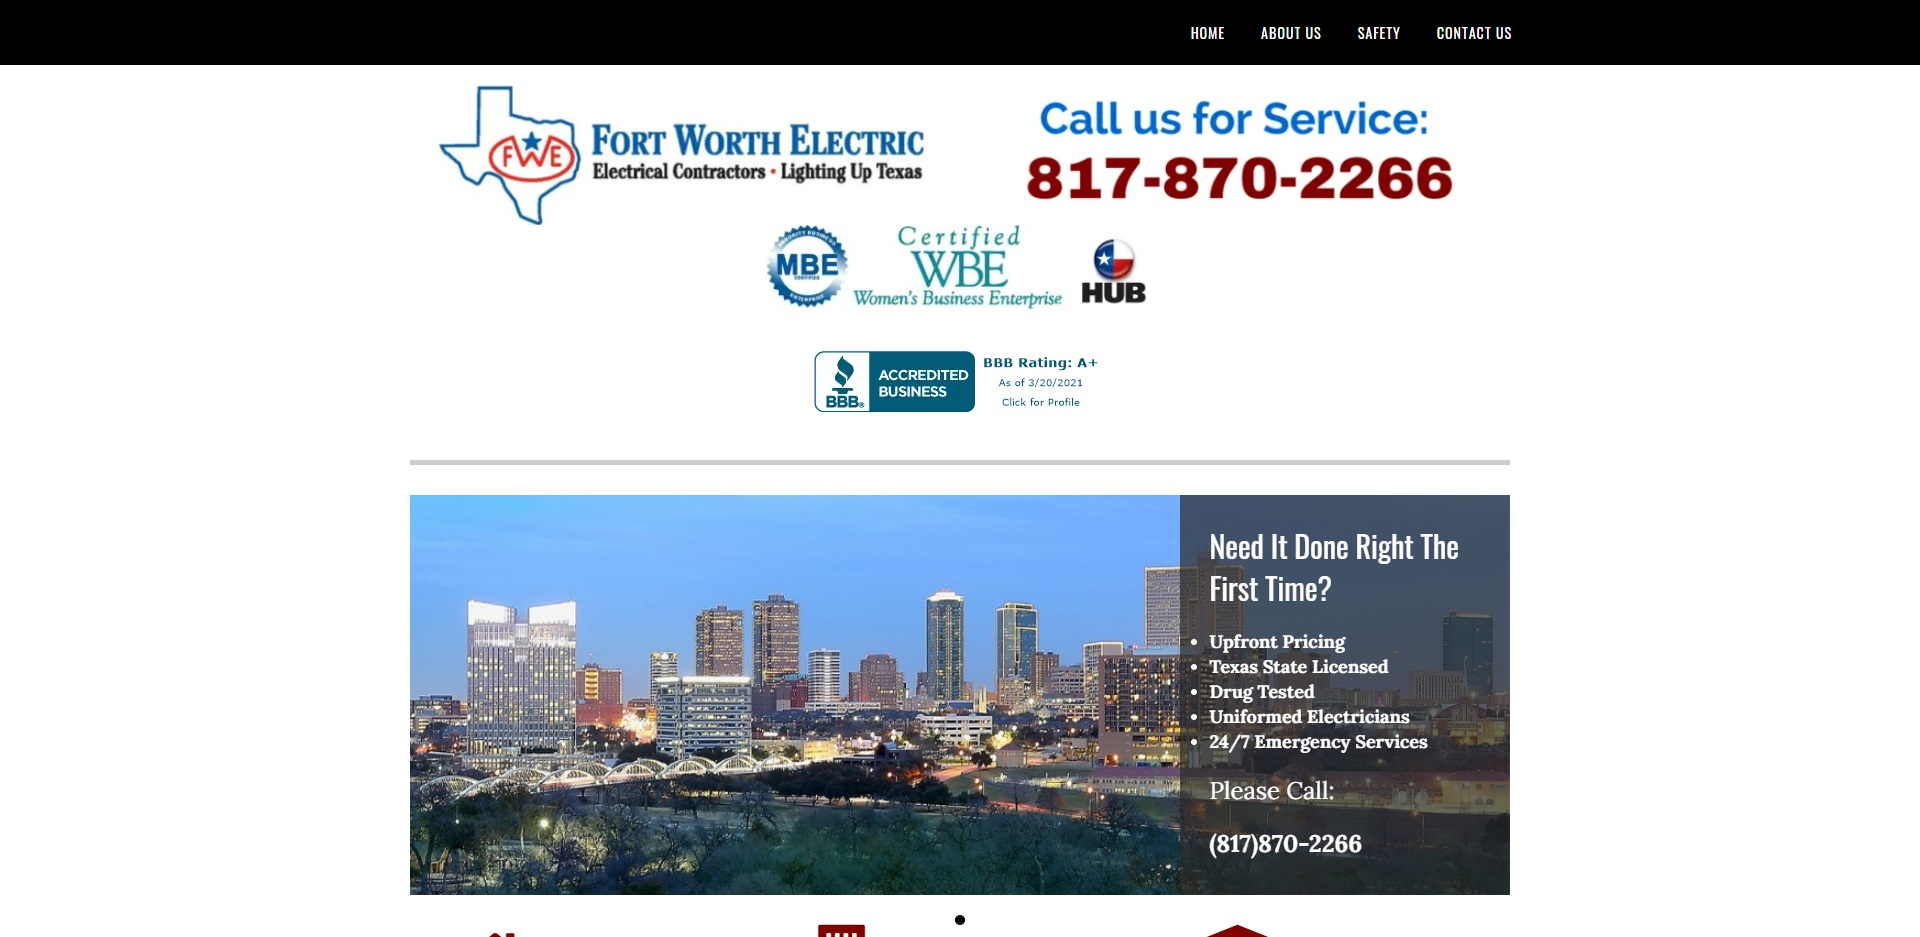 The Best Electrical Services in Fort Worth